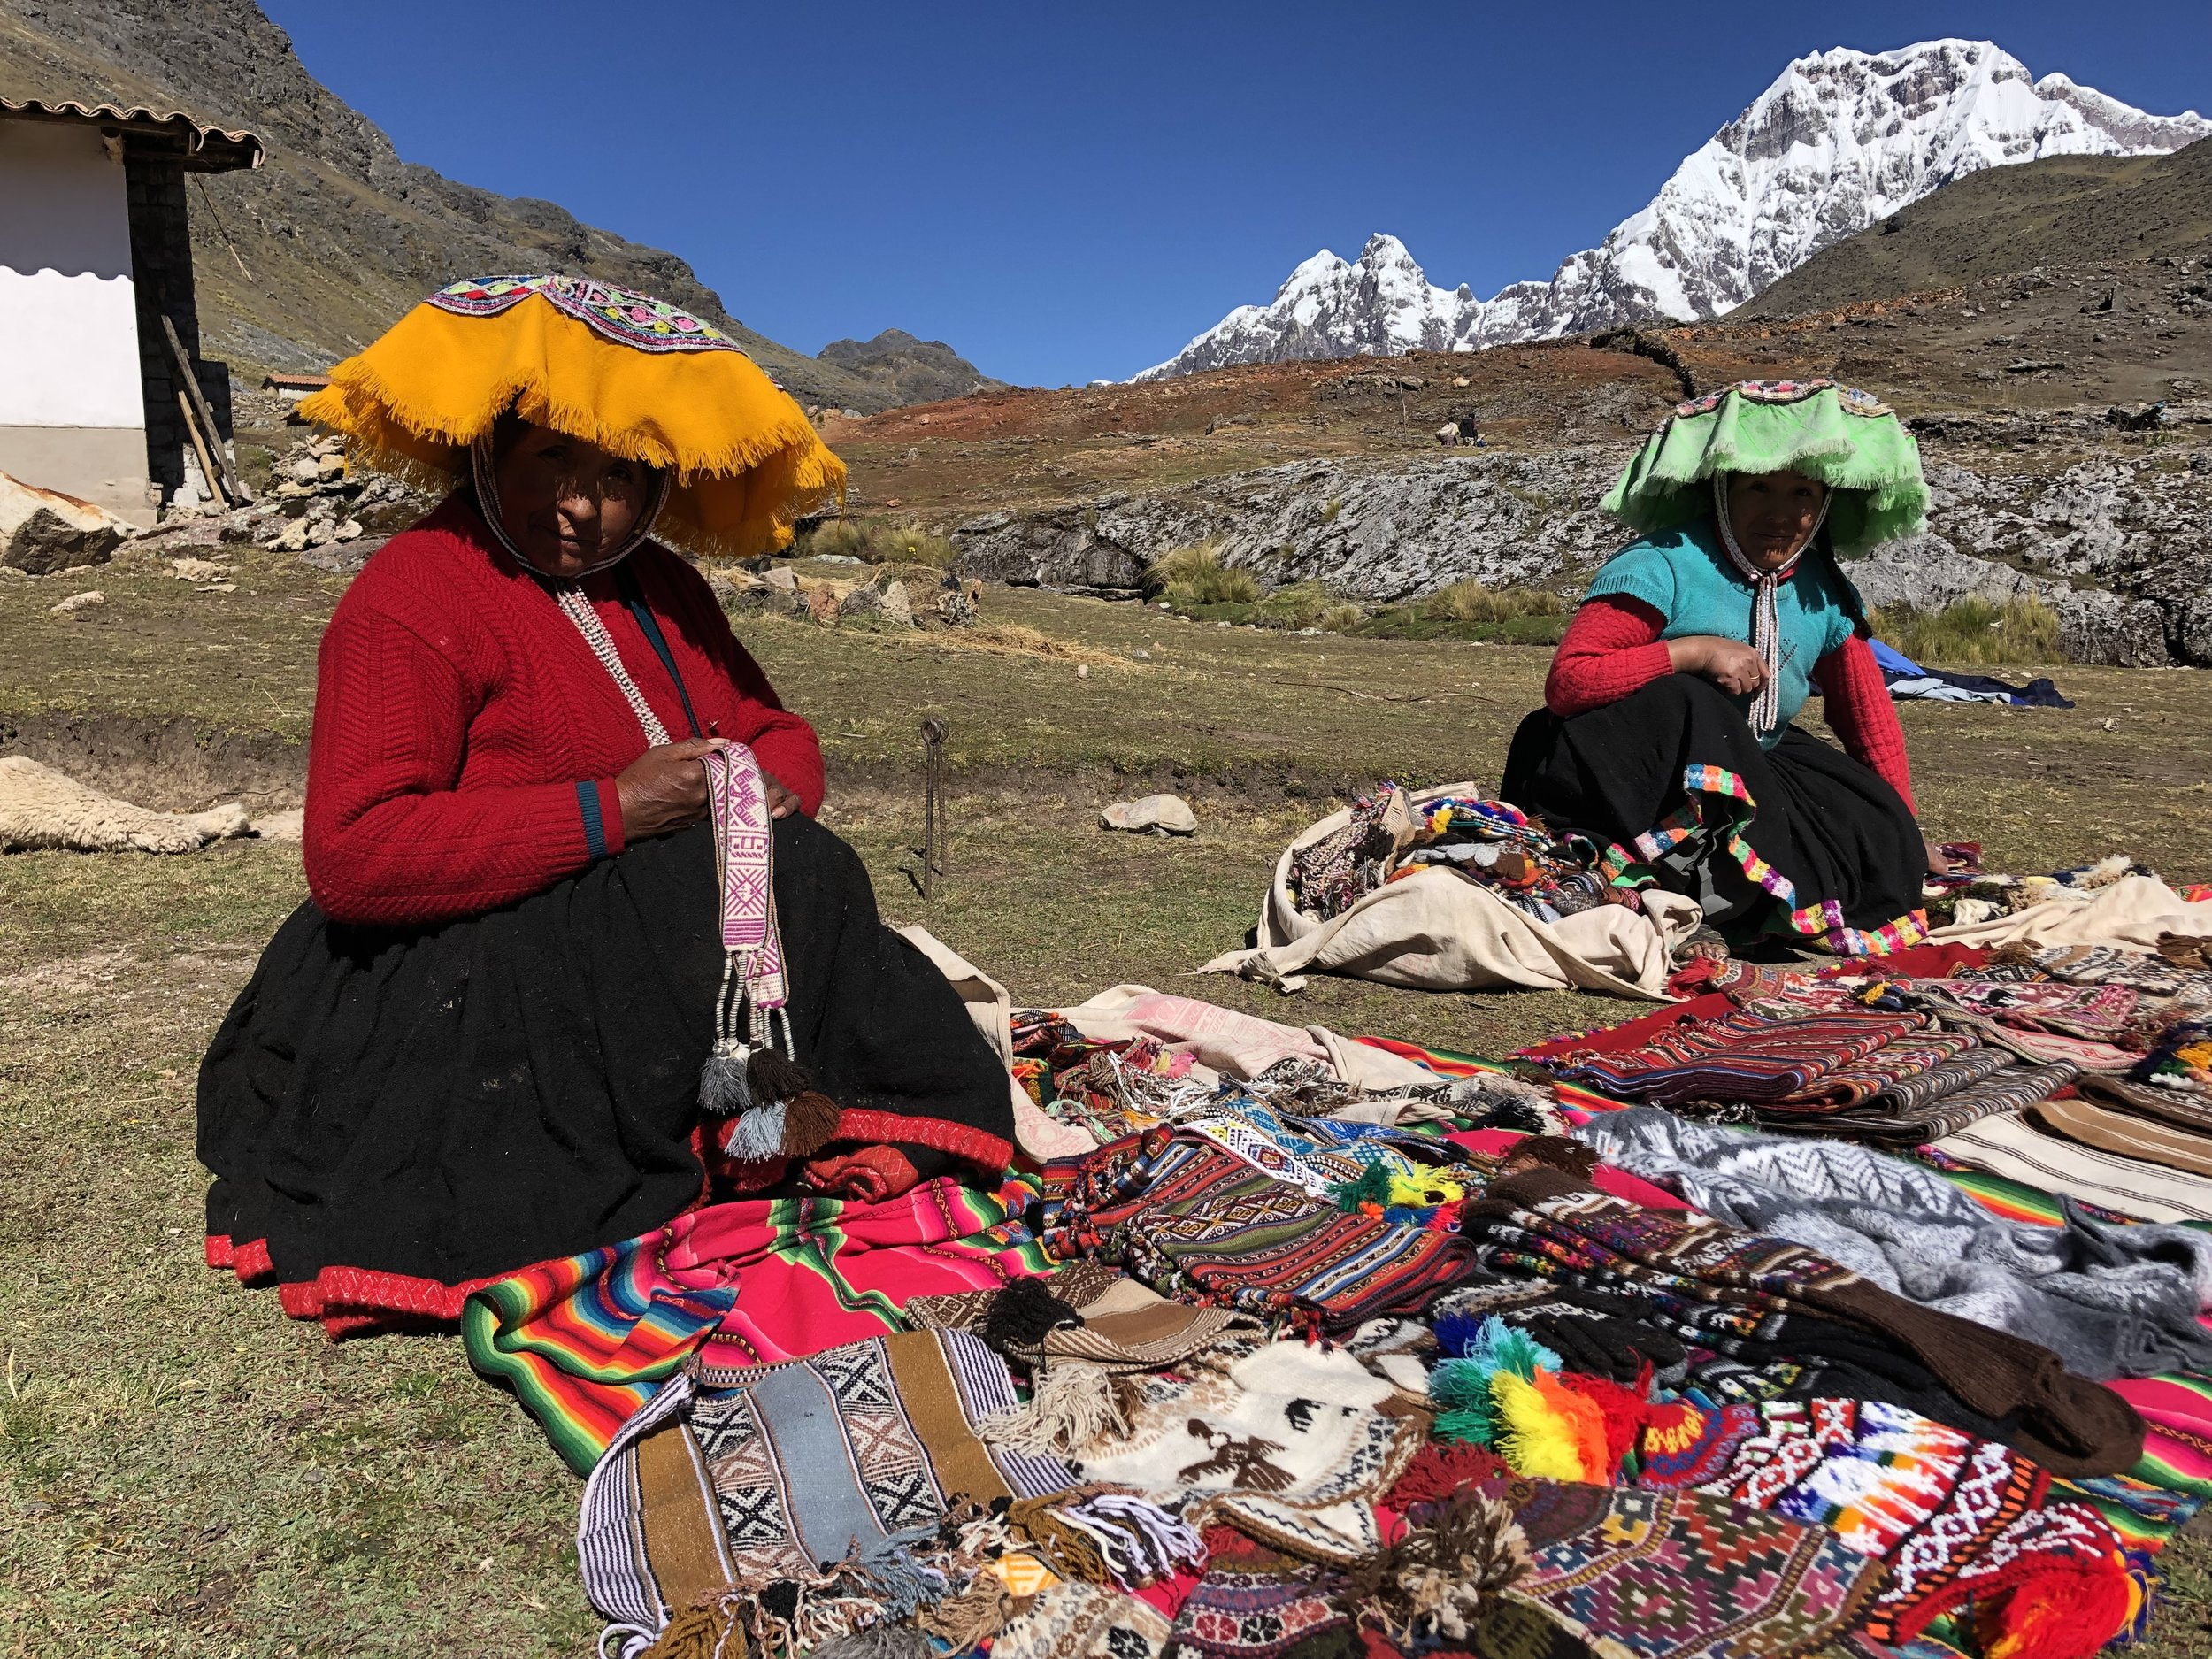 Local ladies selling their creations at our last camp. The ladies weave the cloth and make various things from it.  The quality is high and the prices are very fair.  This was a wonderful trek and a perfect way for us to acclimatize to altitude. And, it is only 4 hours away from Cusco! Another fabulous experience in Peru!